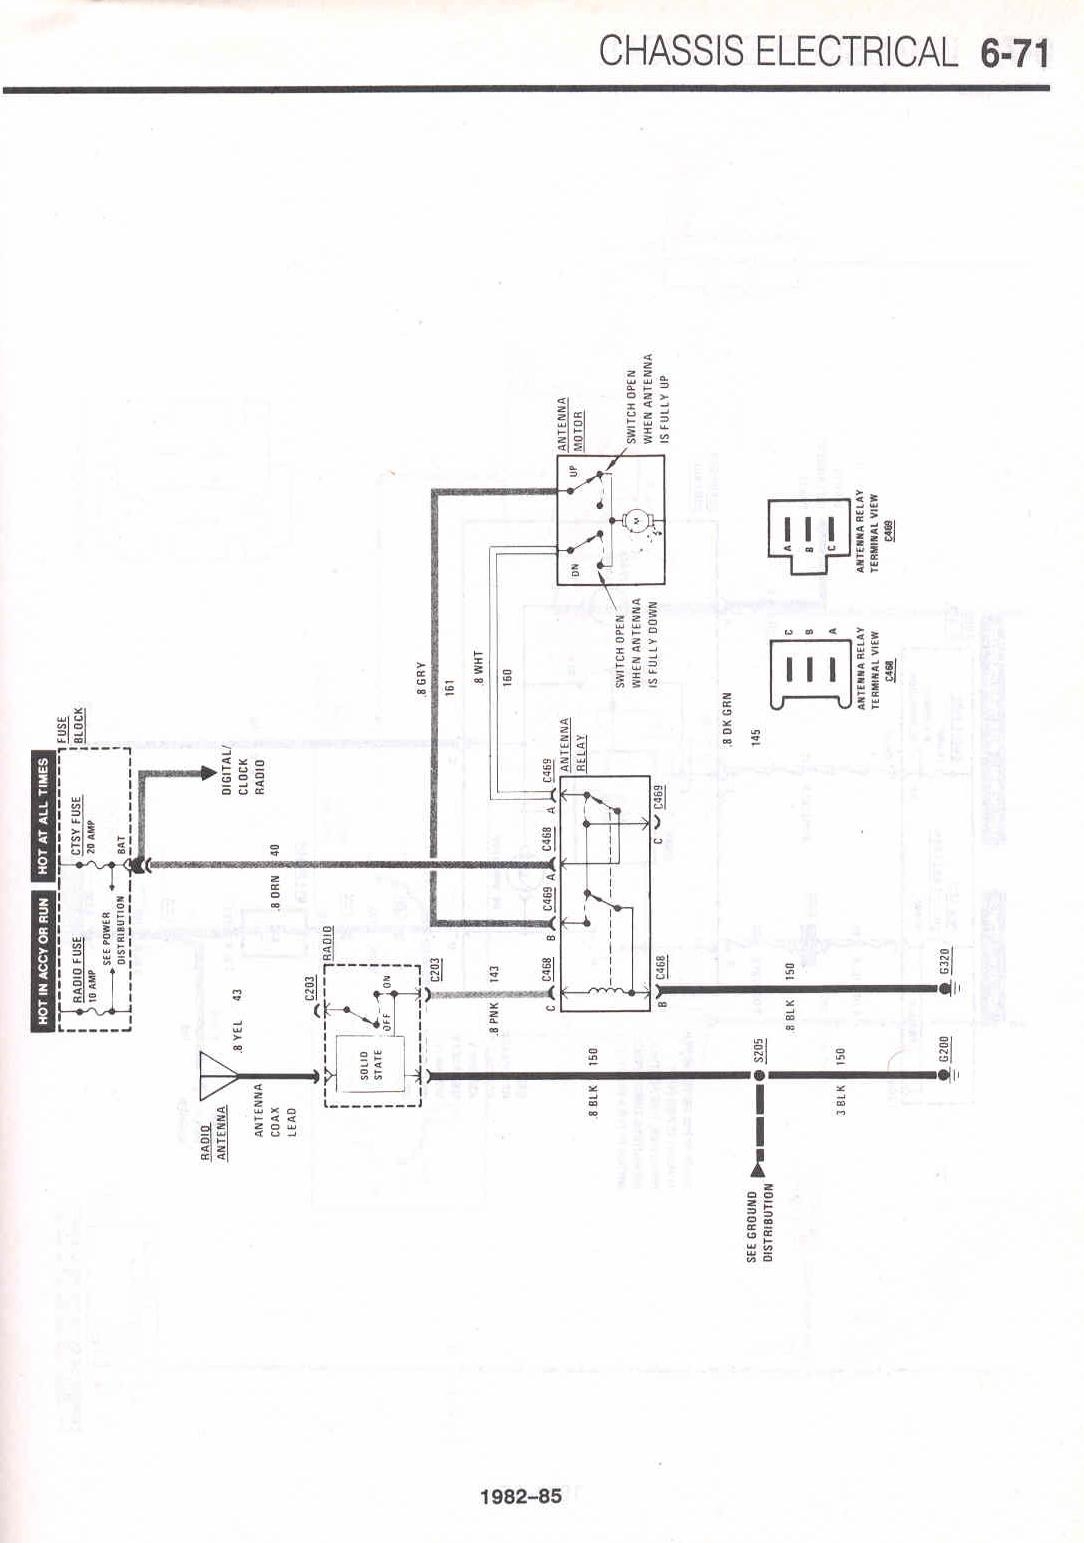 84 Camaro Battery Wire Diagram, 84, Free Engine Image For